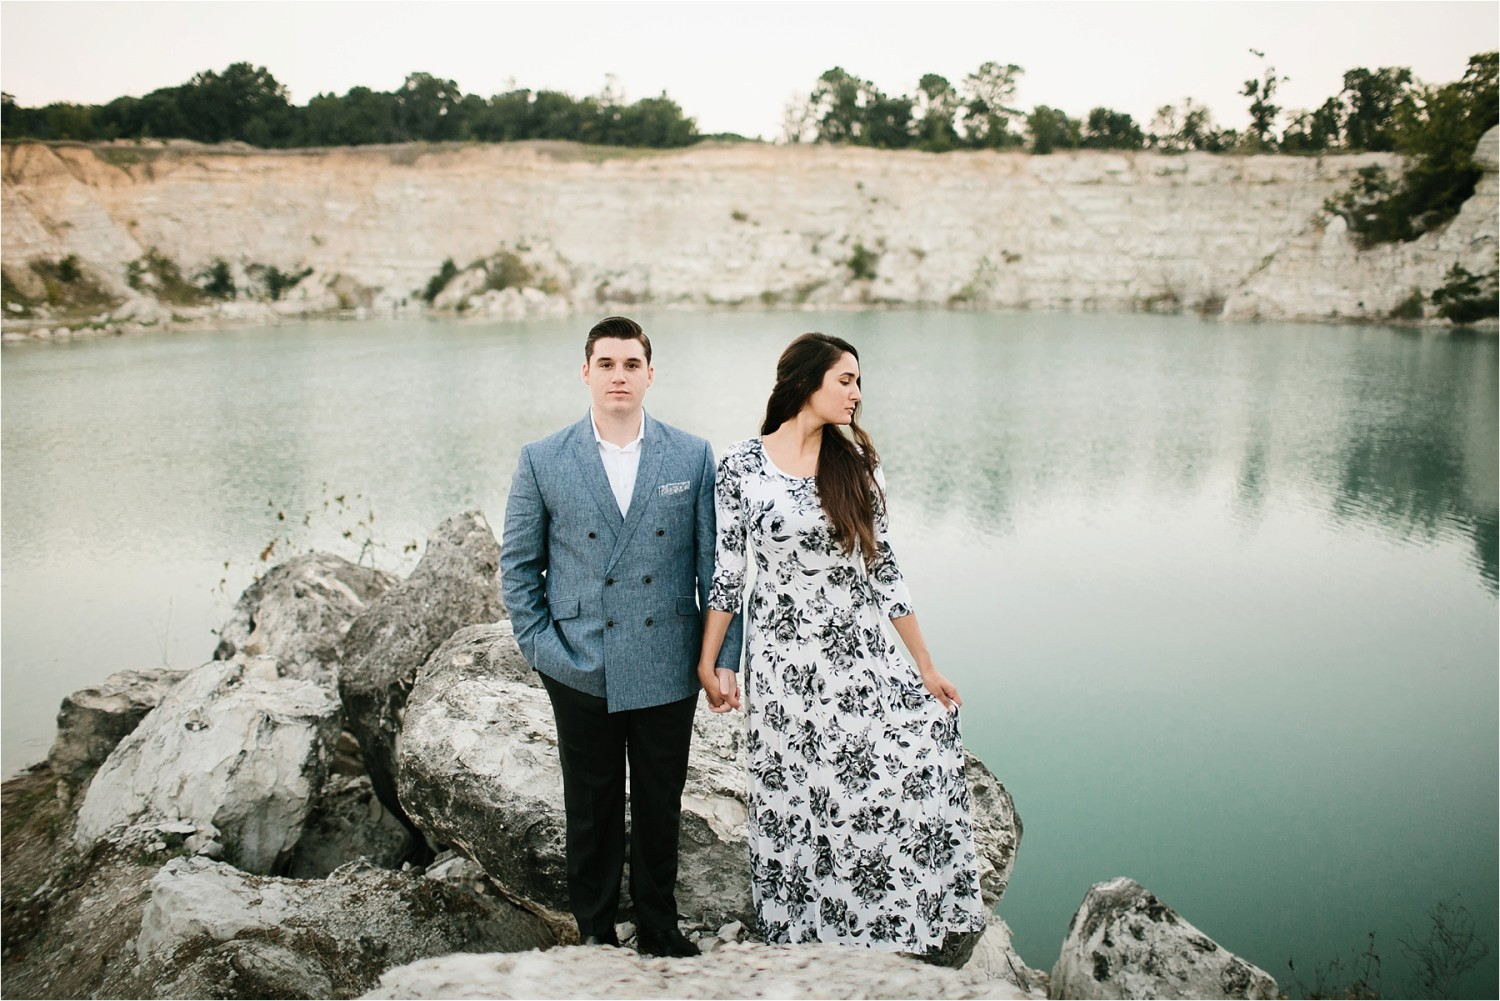 an-intimate-sunrise-session-by-north-texas-wedding-photographer-rachel-meagan-photography-_-09